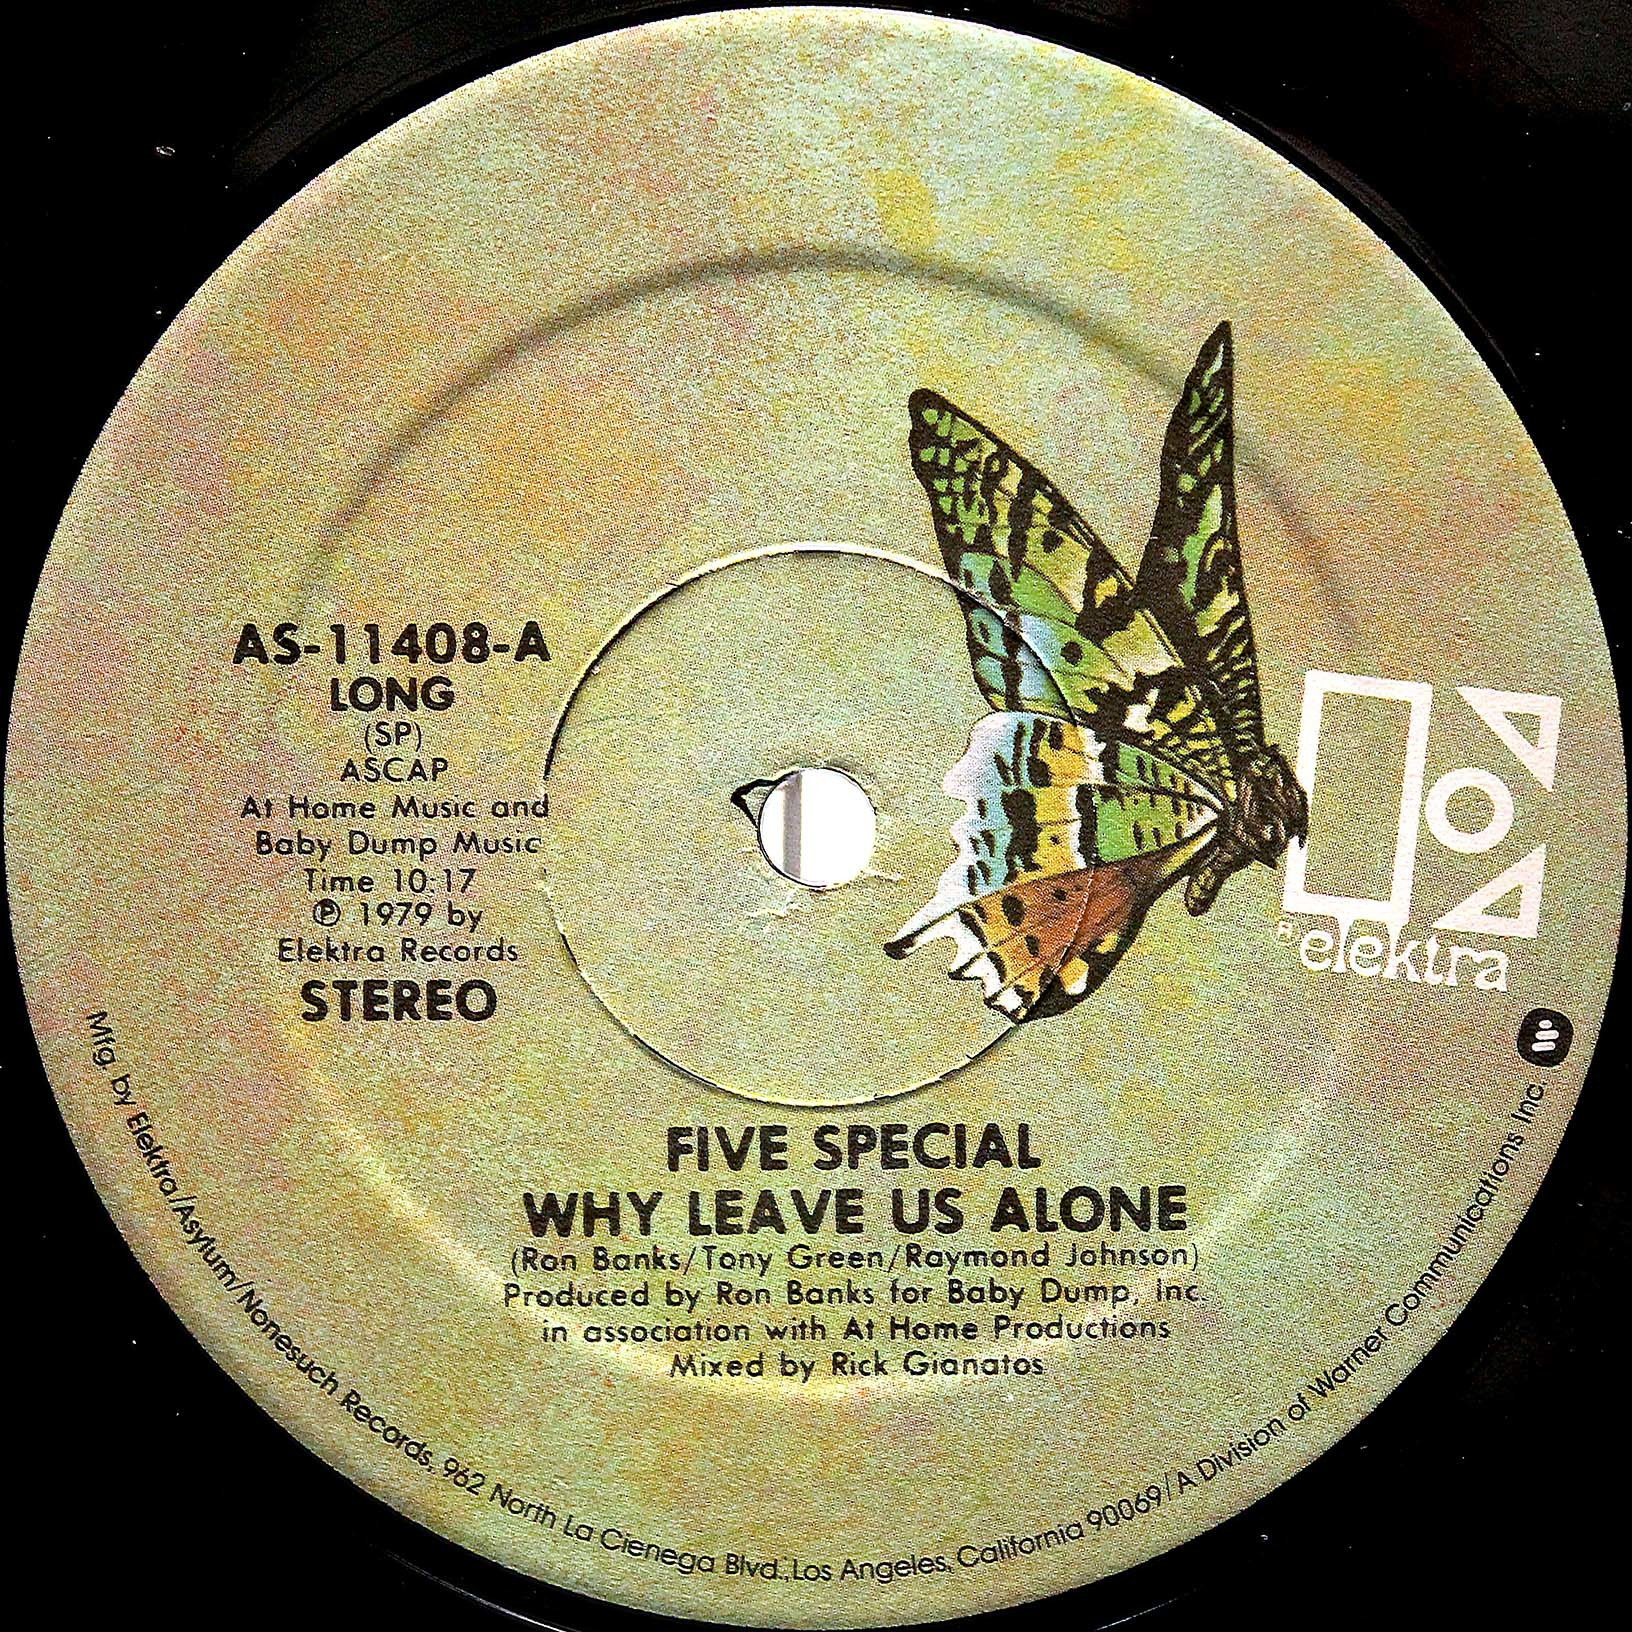 five special why leave us alone 03